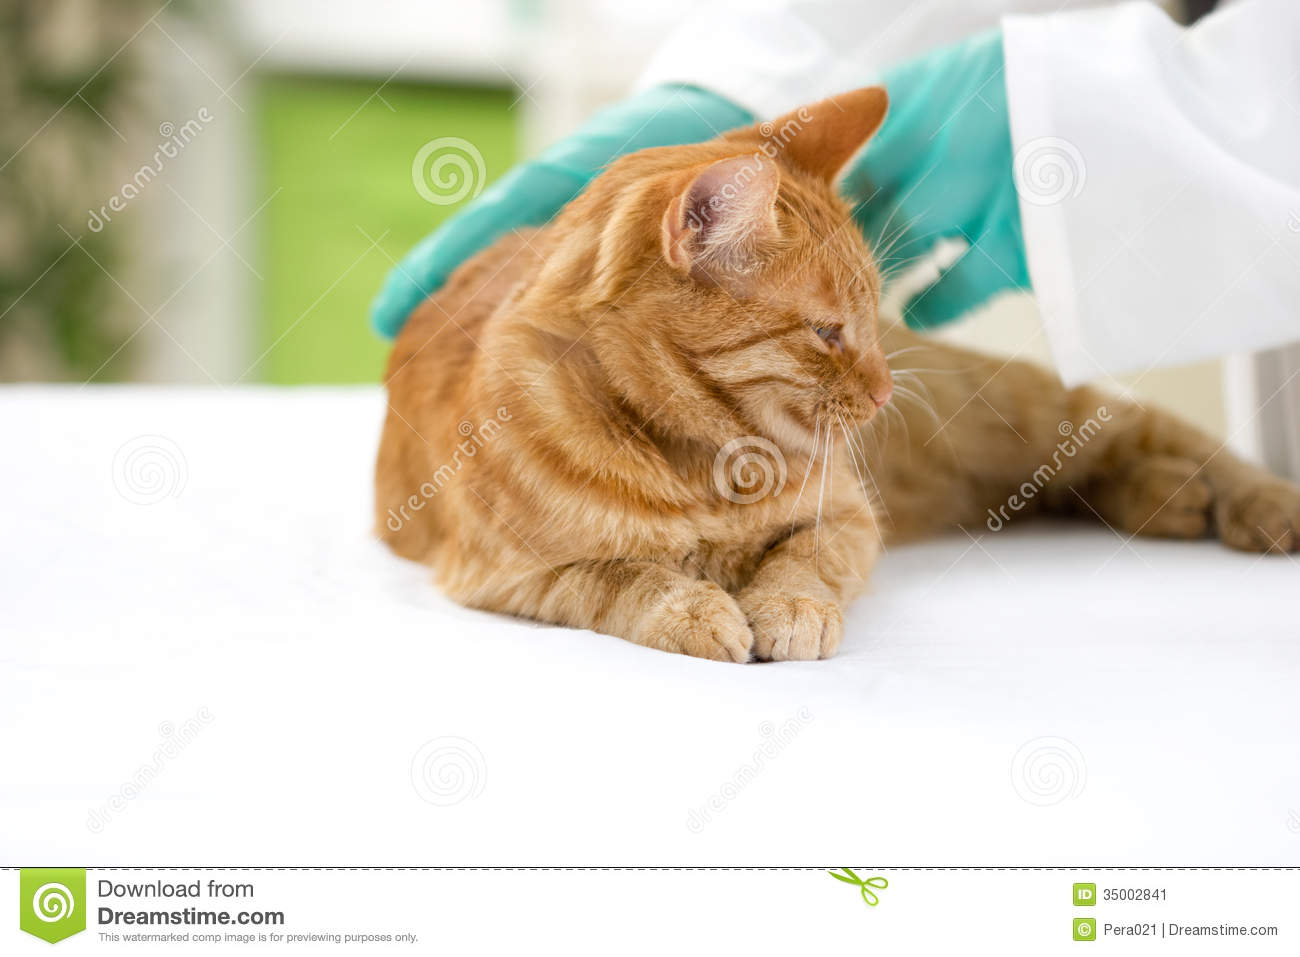 Vet checks the health of a cat in a veterinary clinic